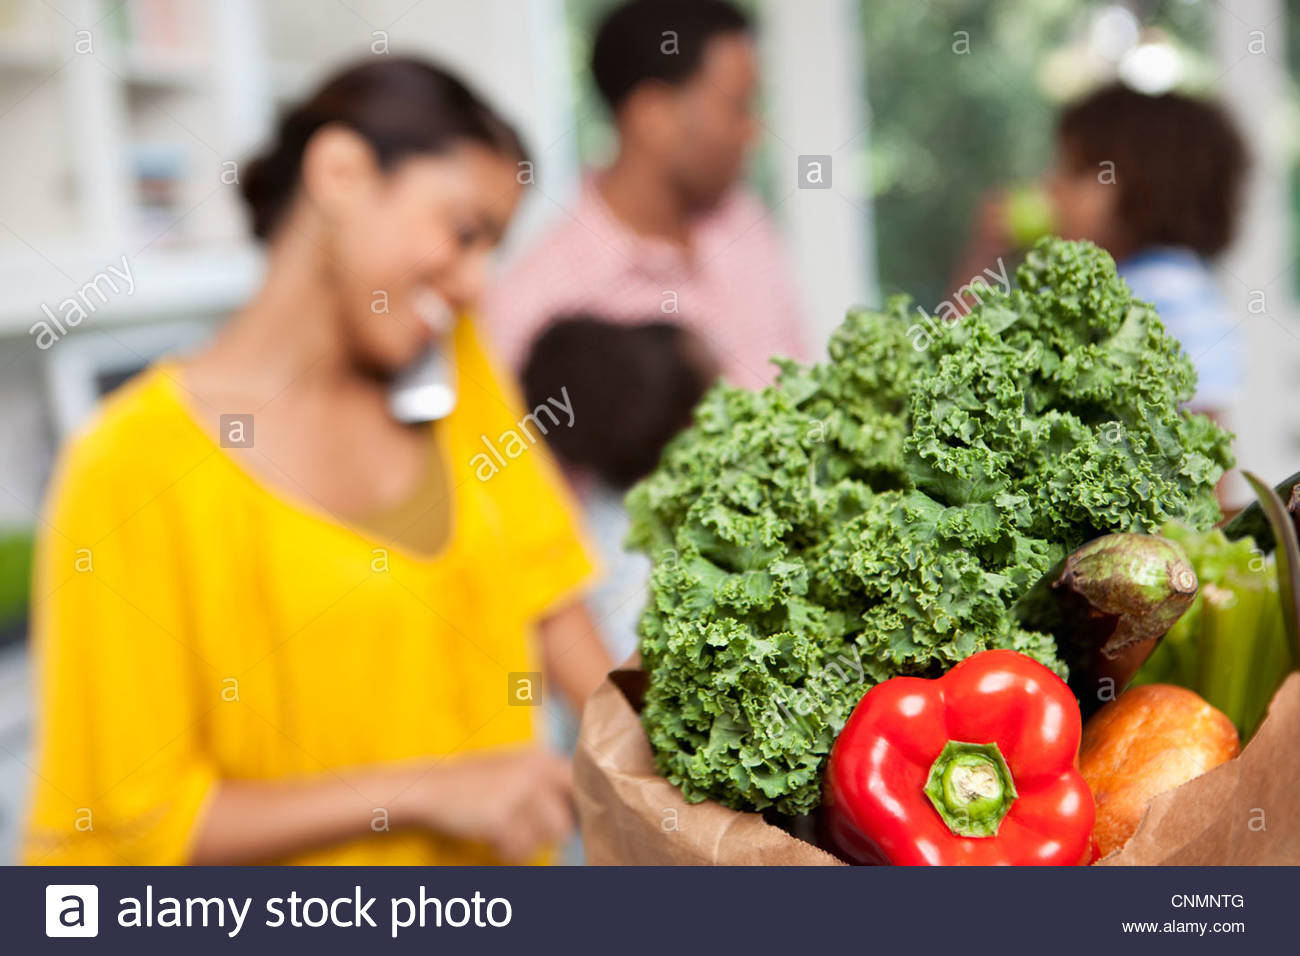 Close up of bag of groceries in kitchen - Stock Image